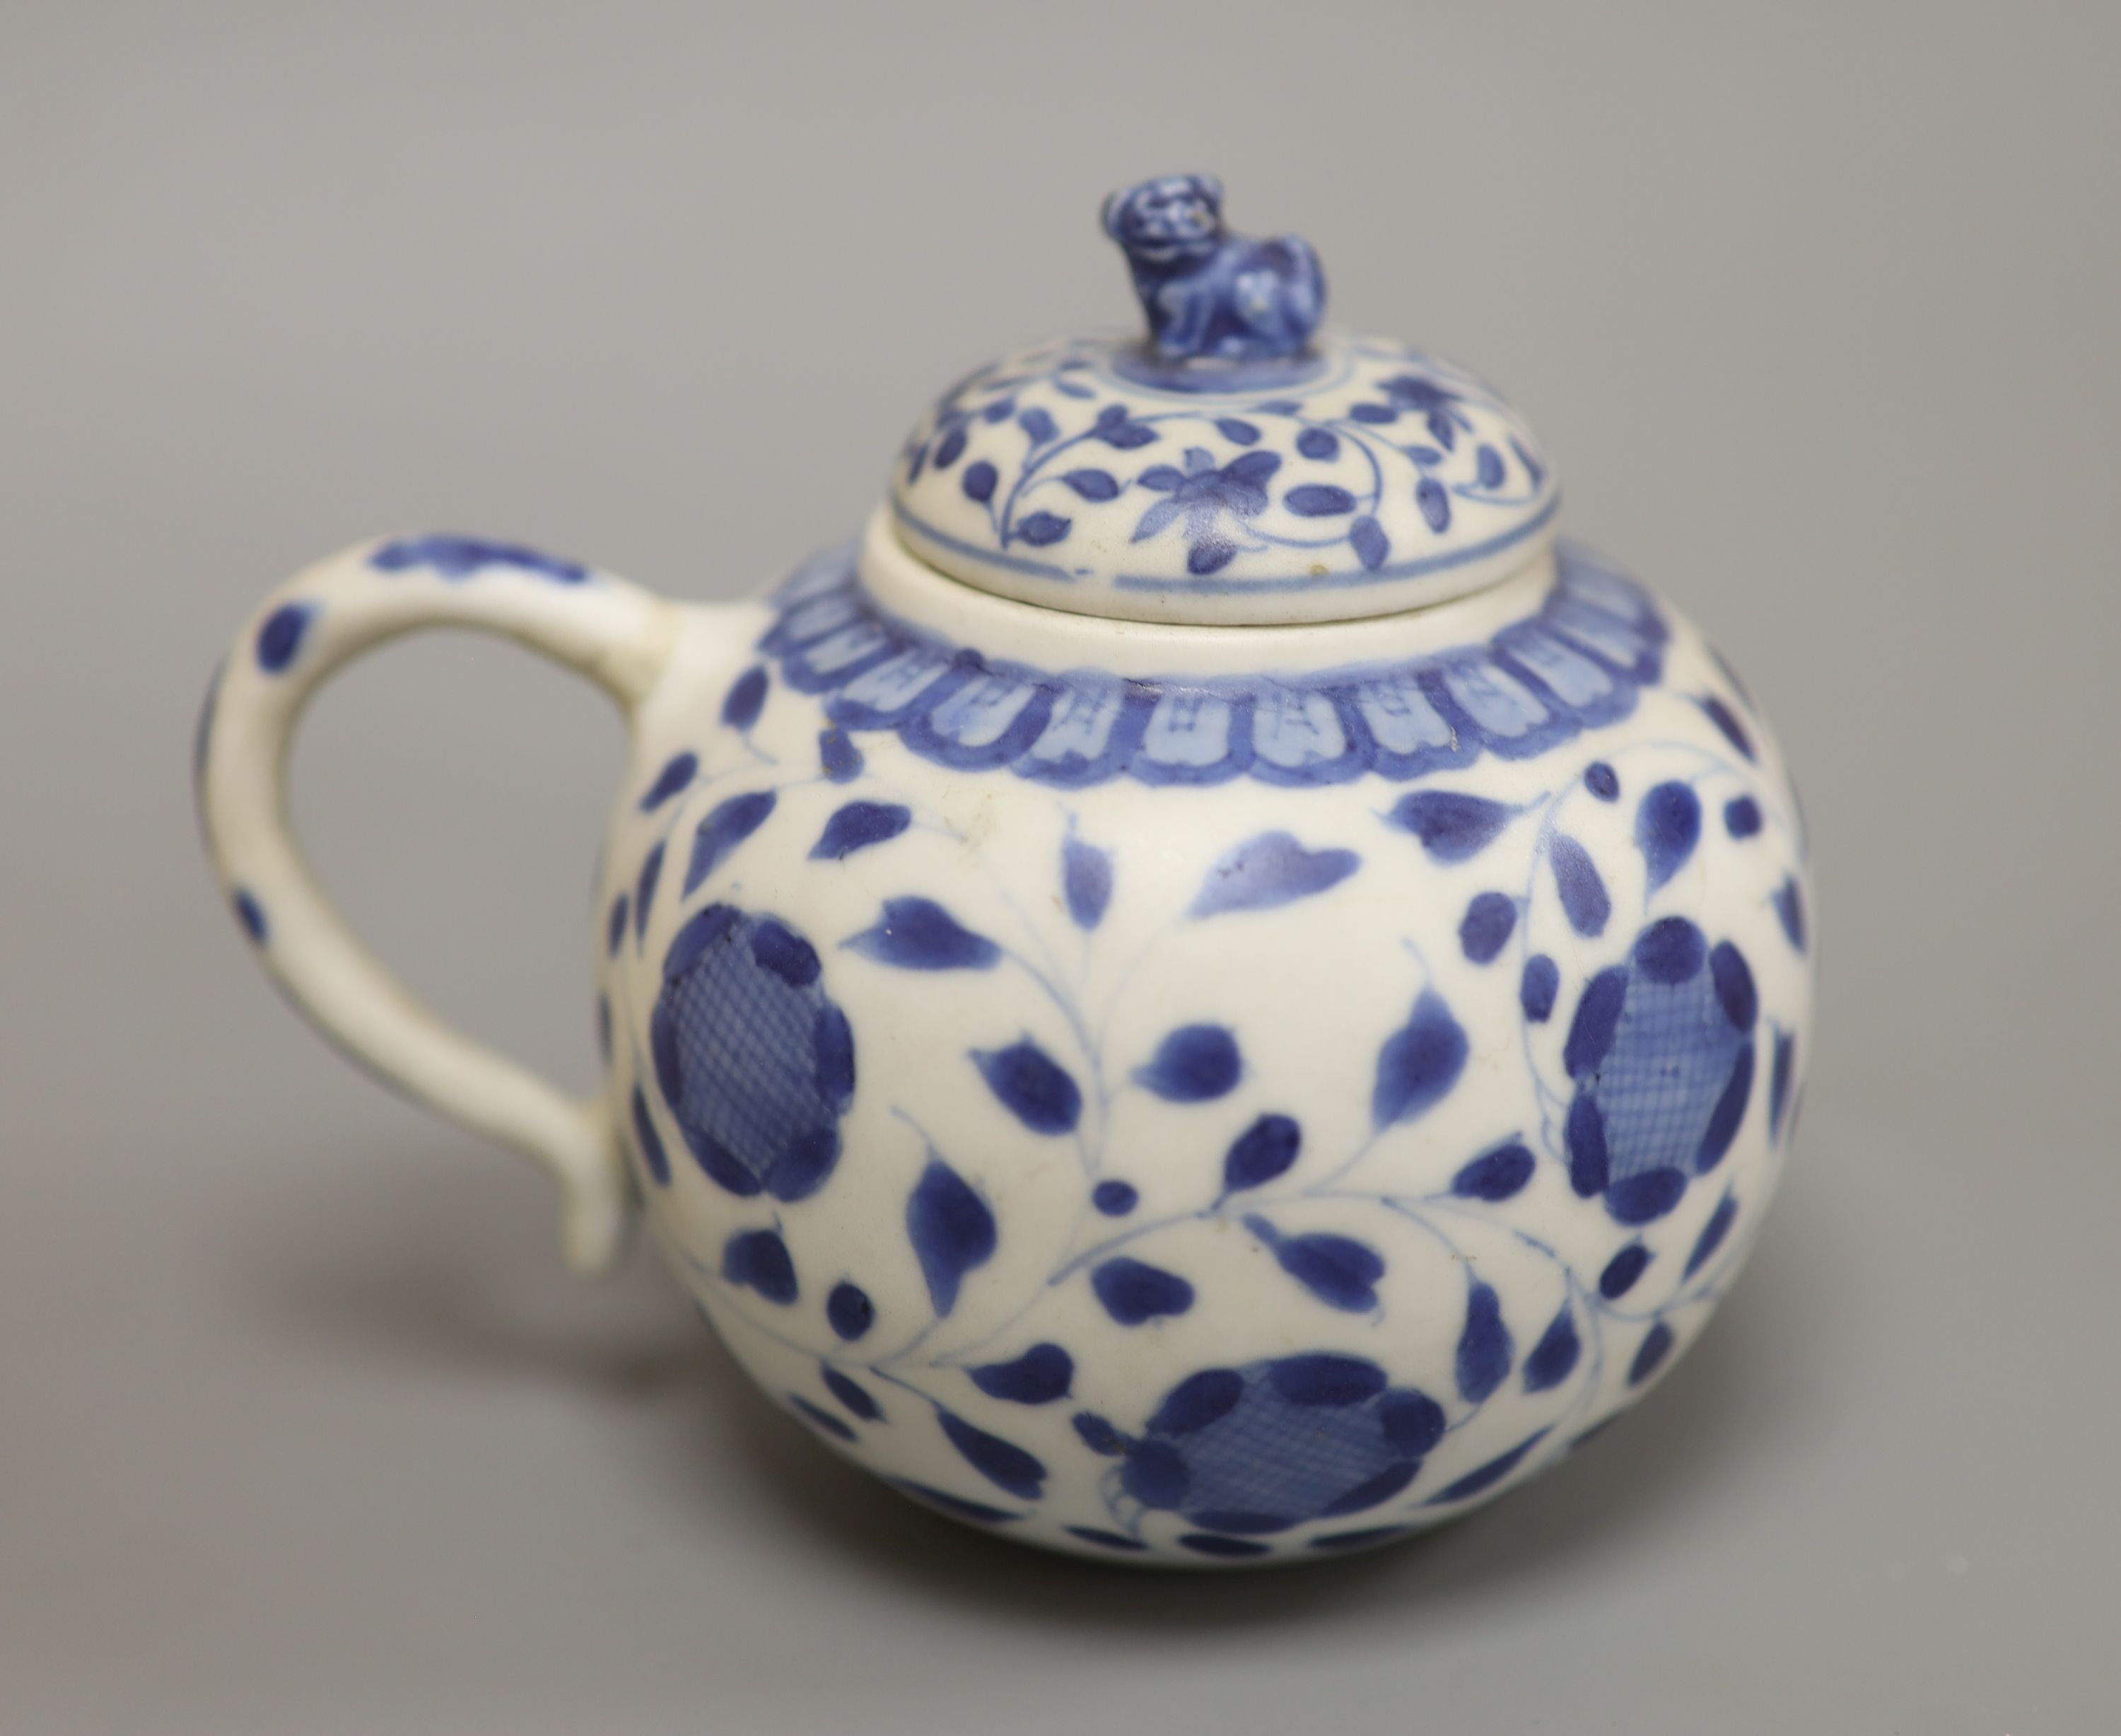 A Chinese Vungtao cargo blue and white mustard pot and cover, height 9cm